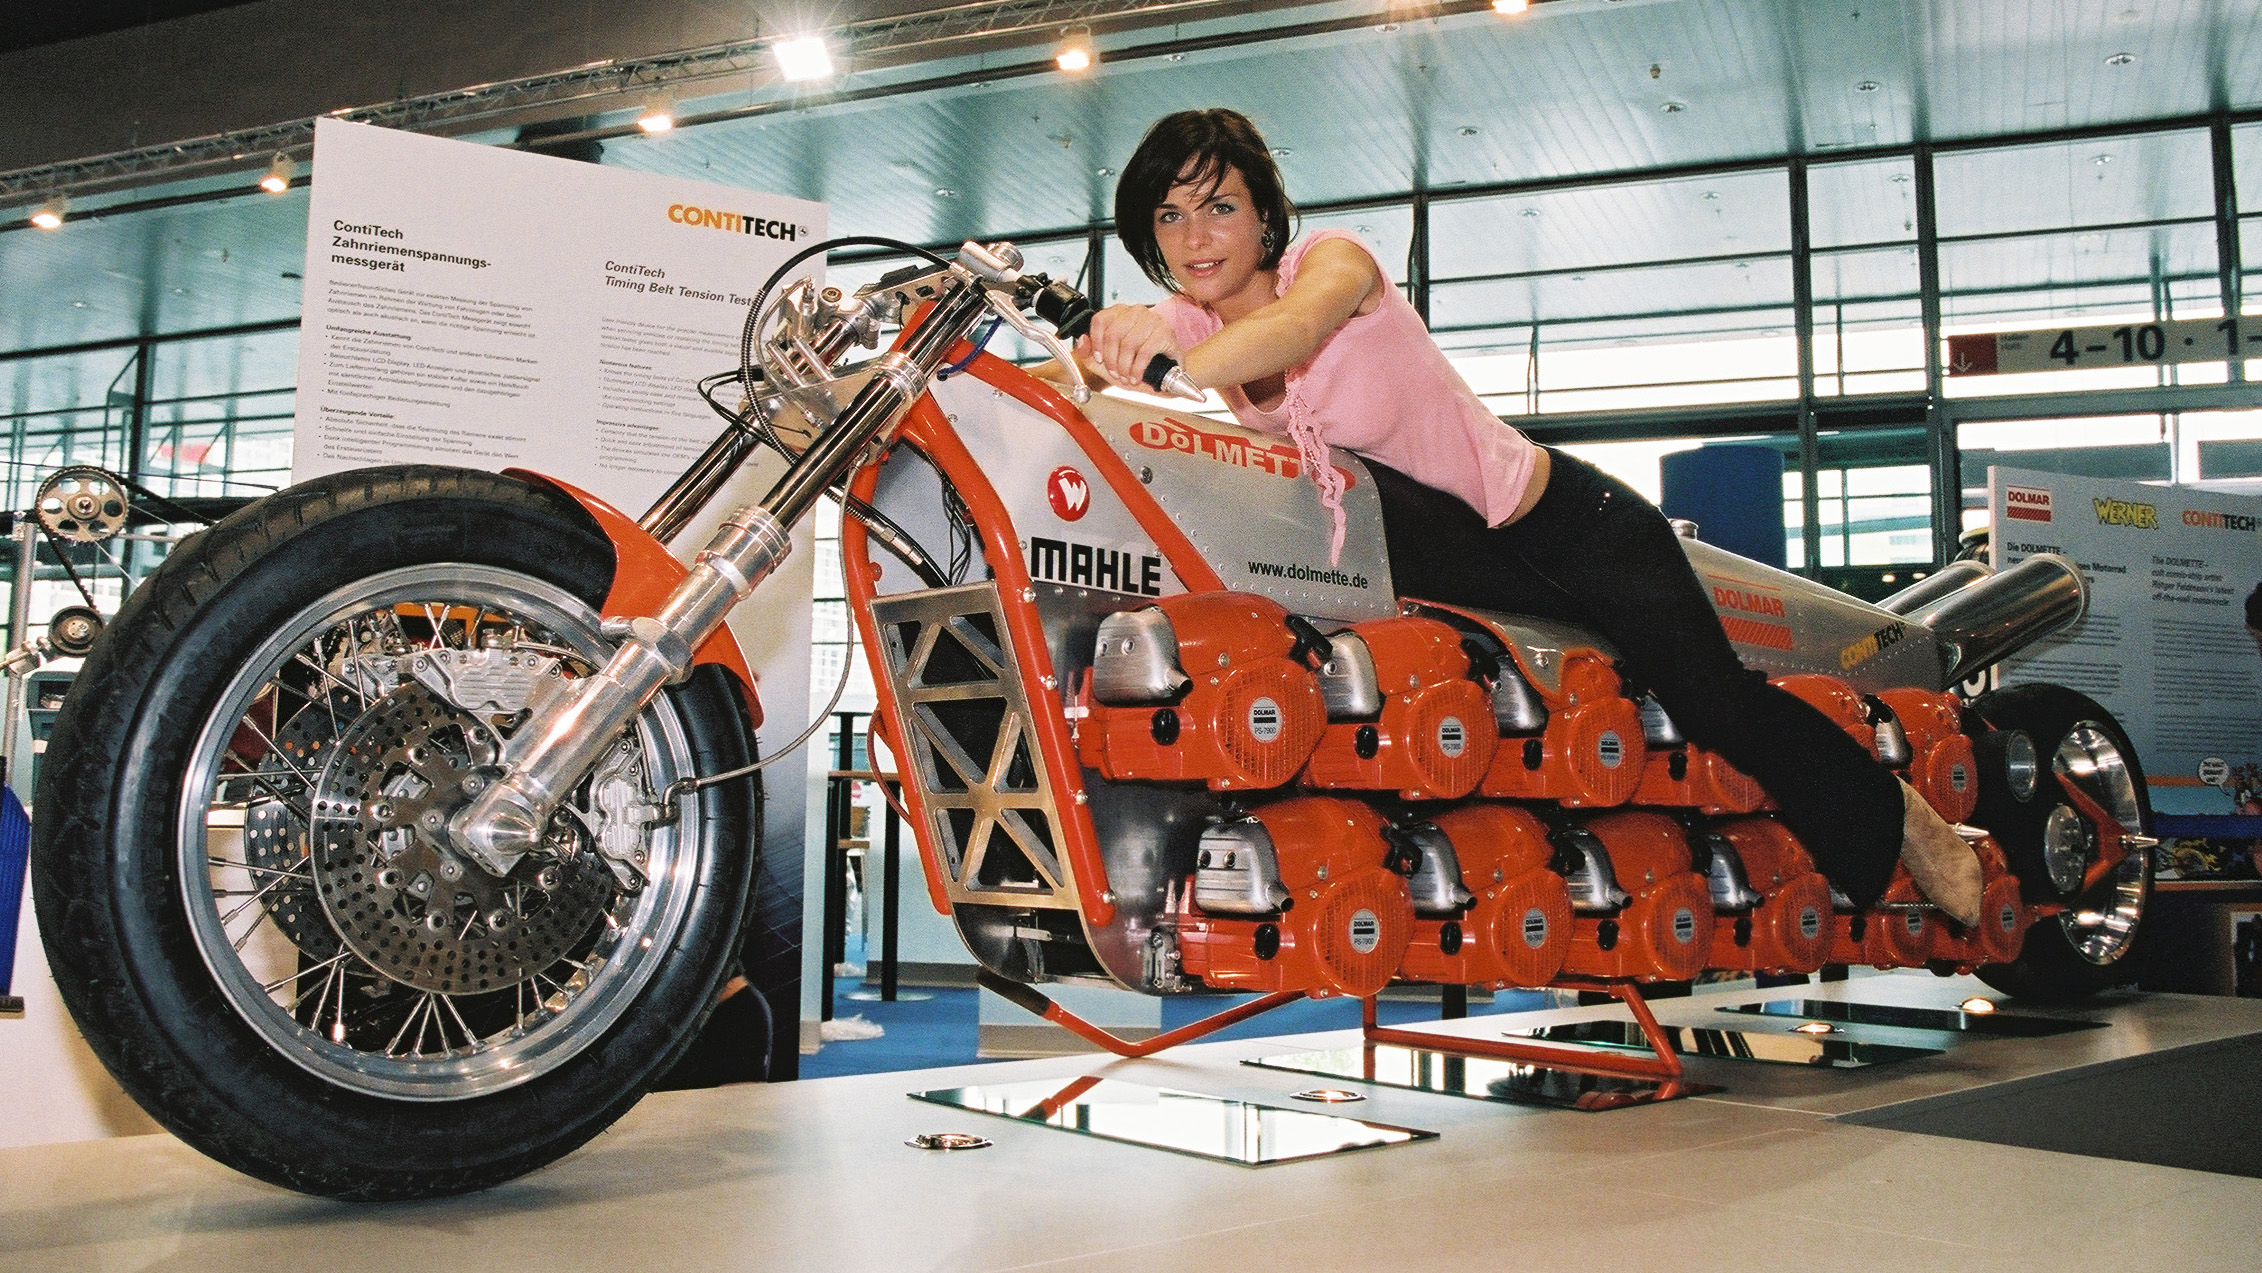 The 'Dolmette' motorcycle exhibited in 2004 is powered by 24 chainsaw motors.